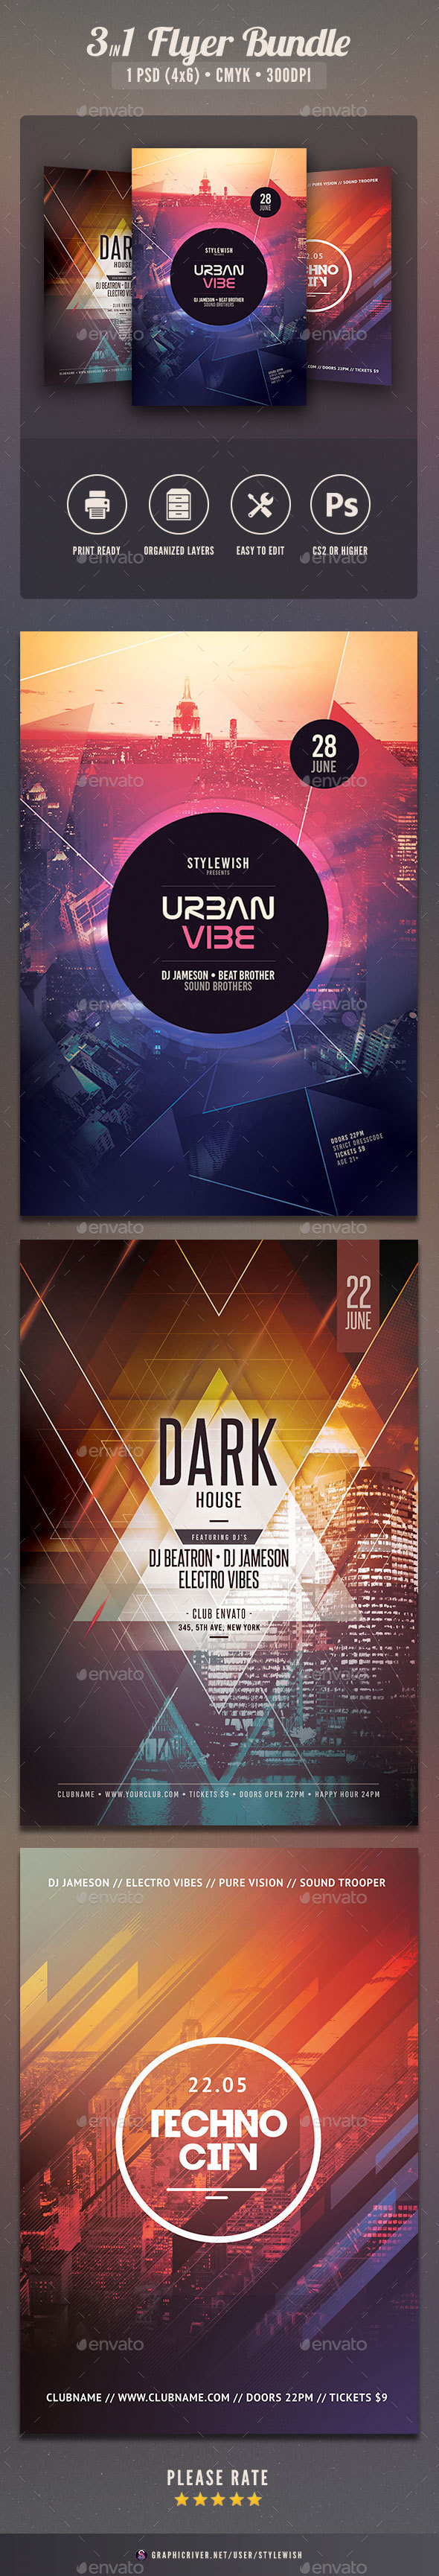 City Flyer Bundle Vol.13 - Clubs & Parties Events